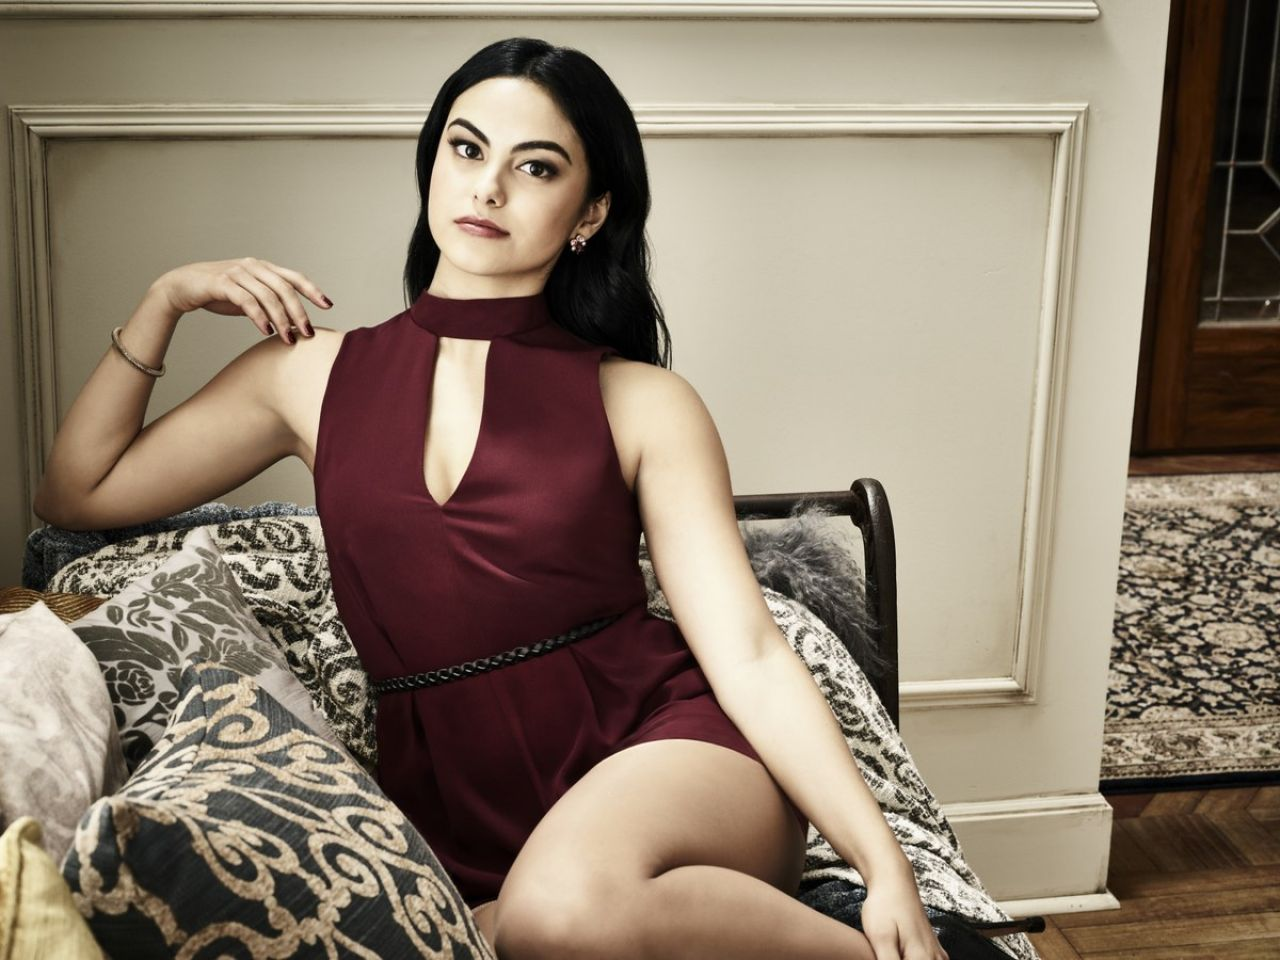 camila mendes wallpaper photos 61287